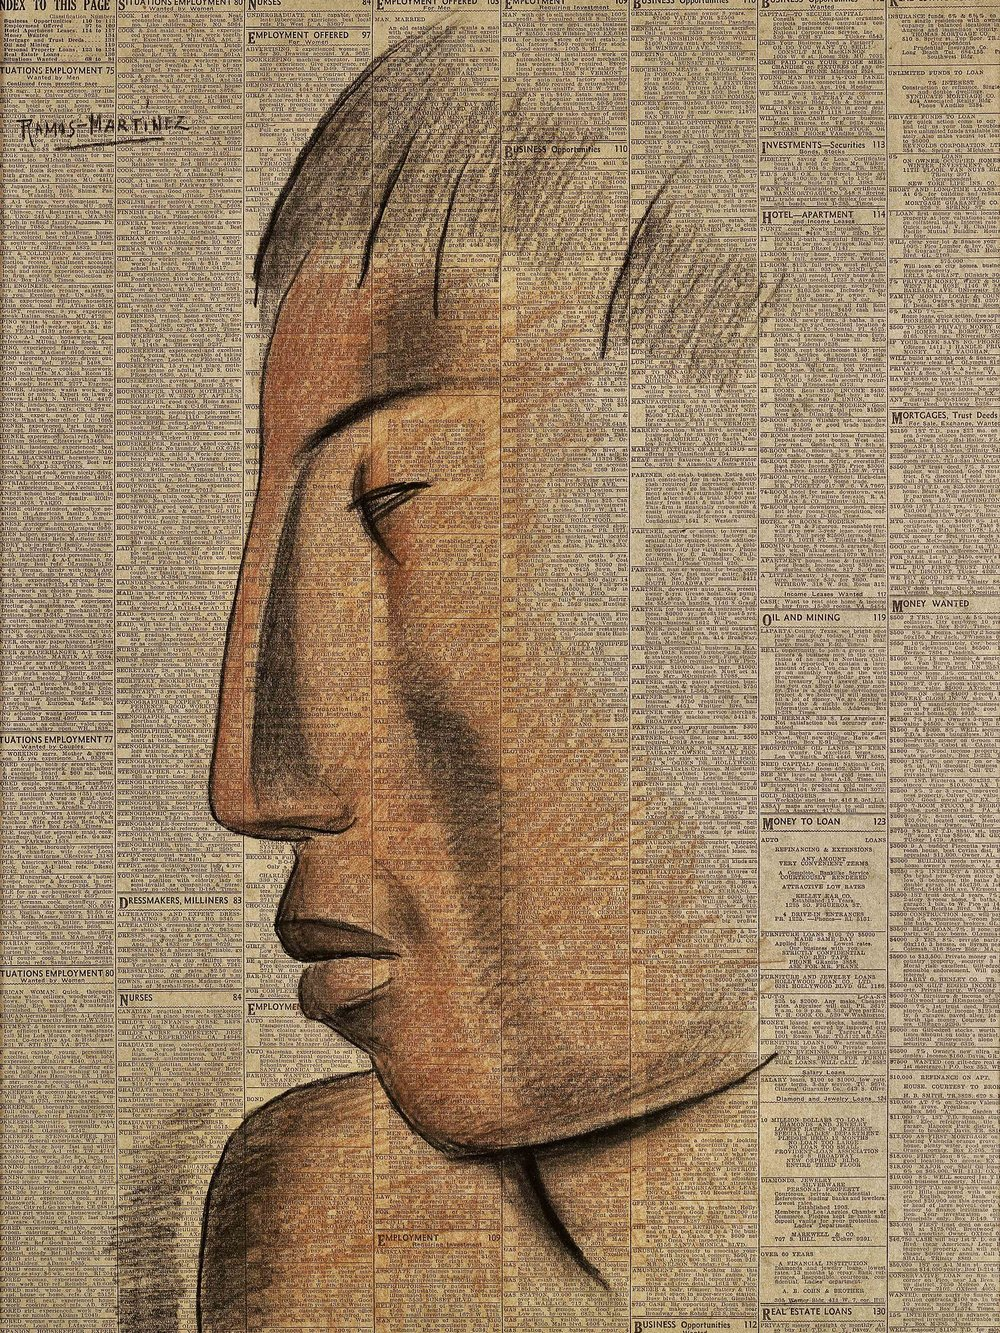 Perfil Azteca / Aztec Profile  1932 Conté crayon on newsprint / crayon Conté sobre papel periódico ( Los Angeles Times , May 16, 1932) 53 x 39.6 inches; 134.6 x 100.6 centímetros Private collection